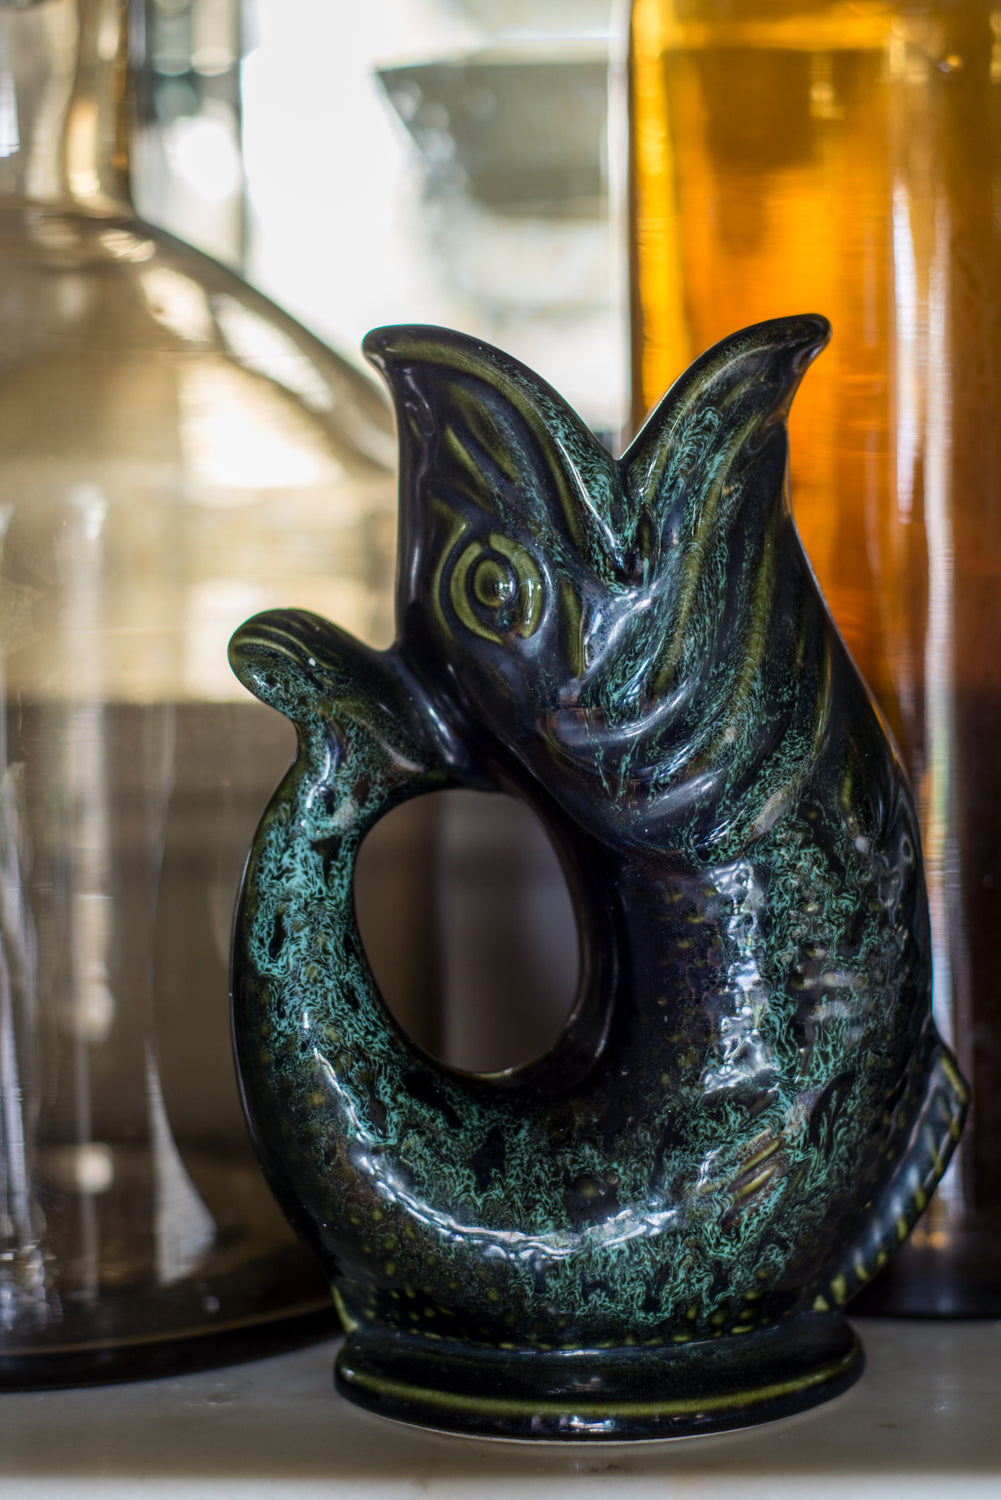 Vintage ceramic Fish Gluggle Jug in Deep Green